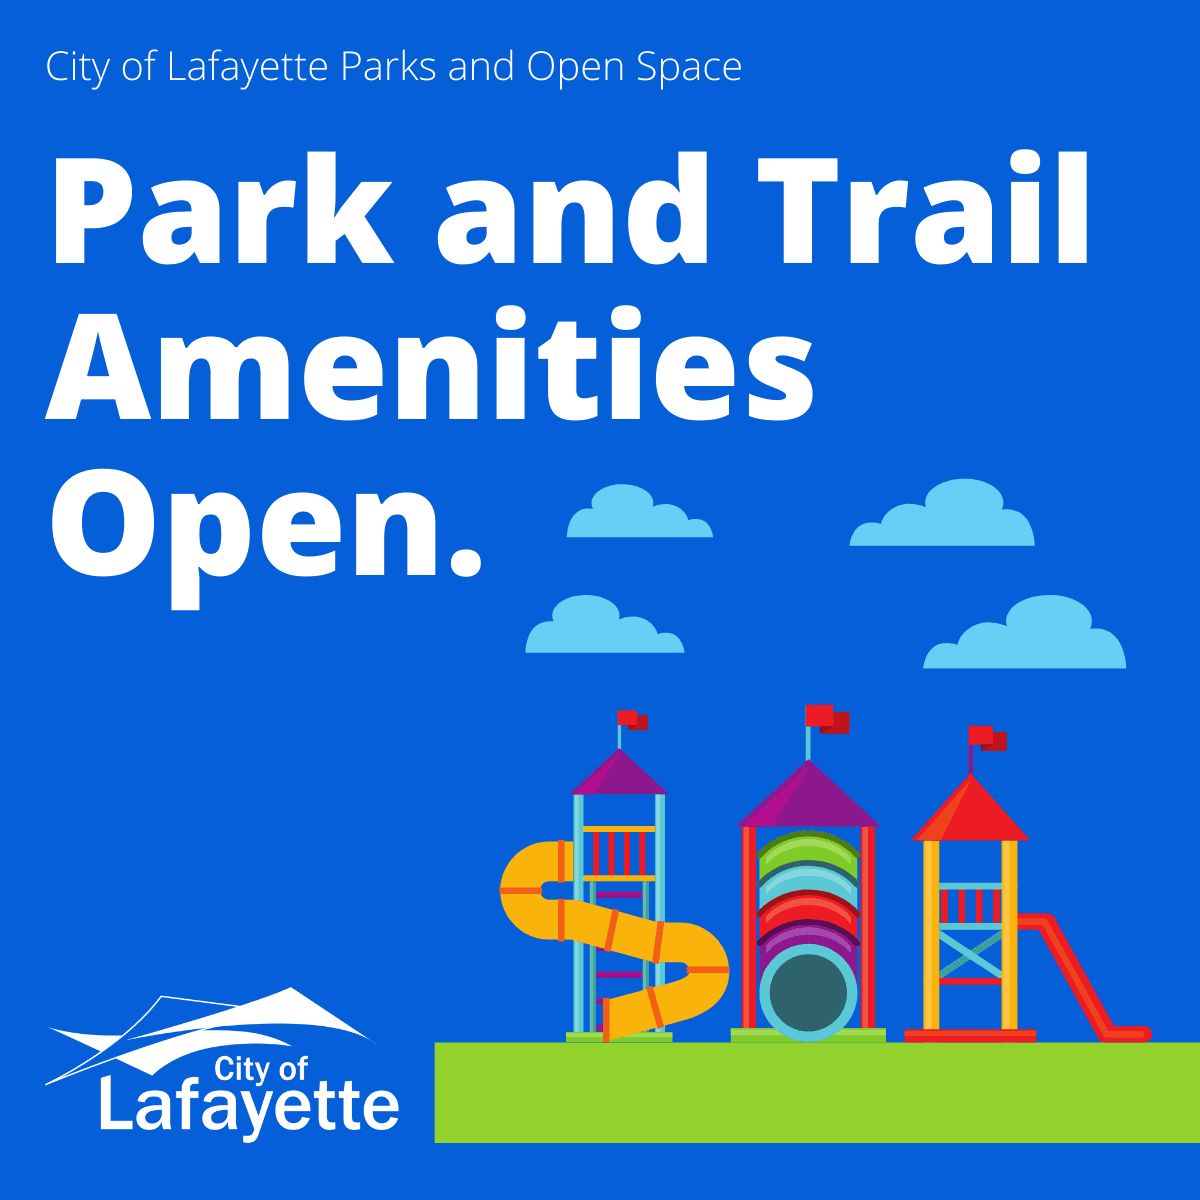 Park and trail amentities open